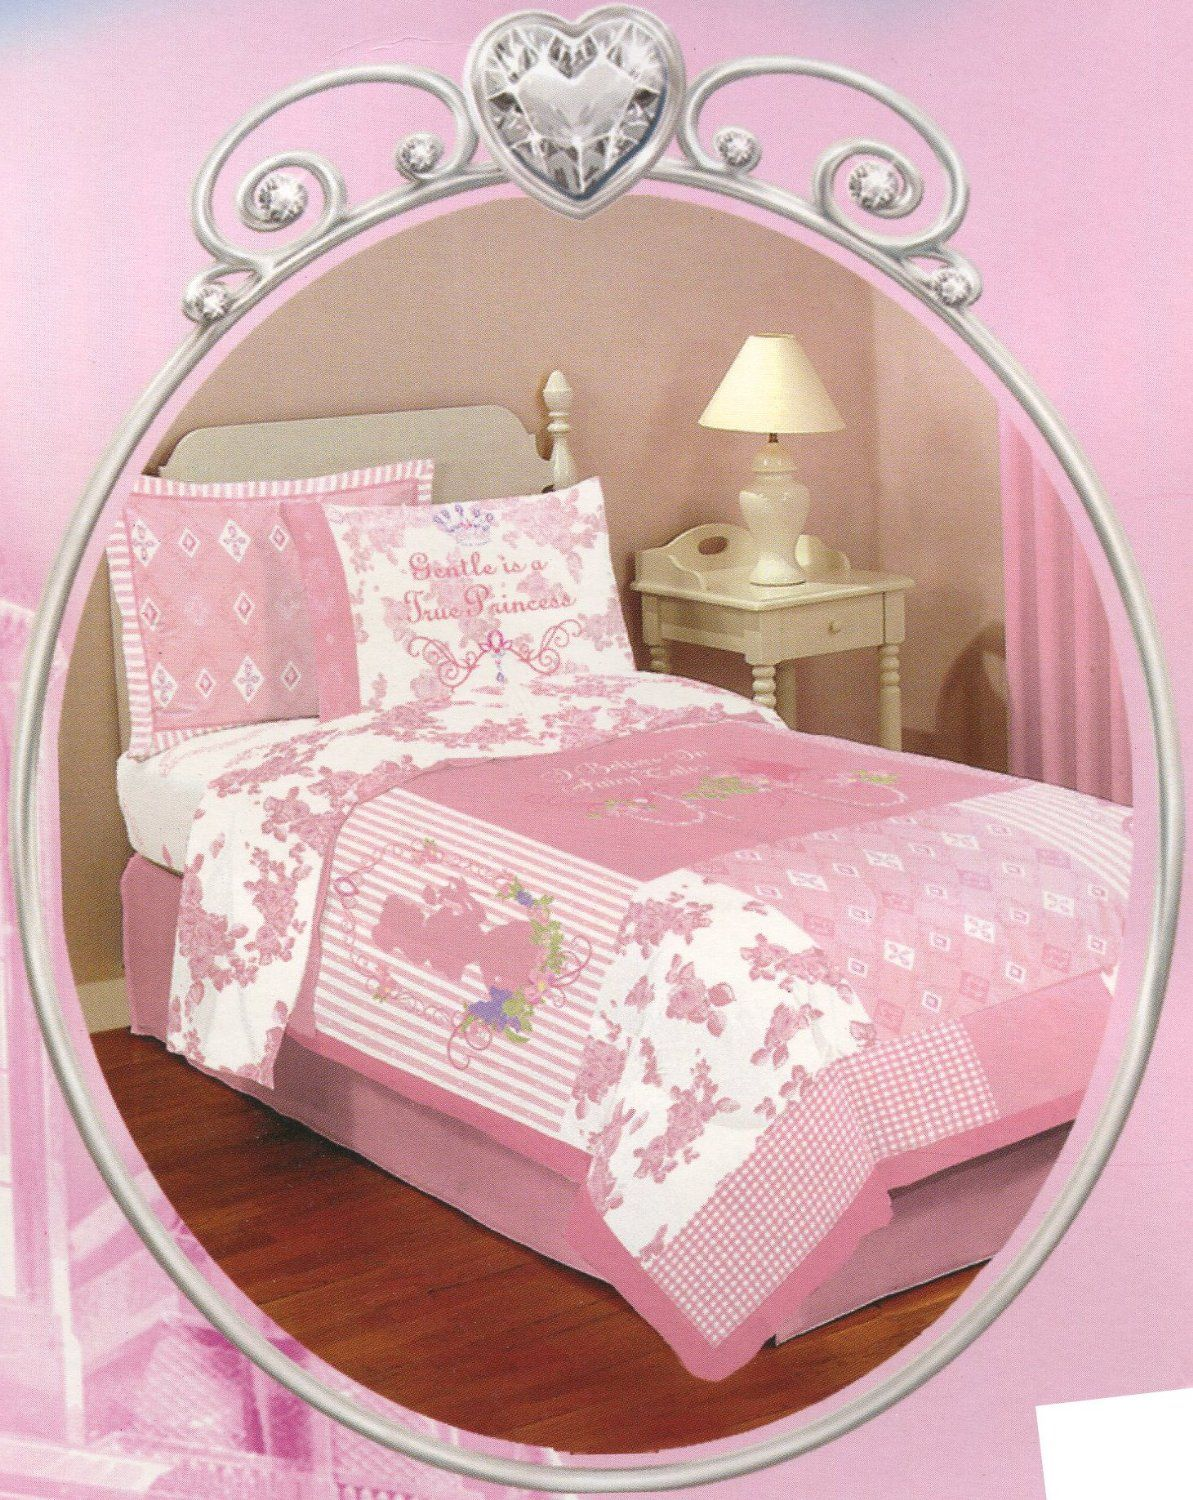 Disney Princess 'Fairy Tale' Full Size Bedding set – 7pcs Bed in a Bag Only $63